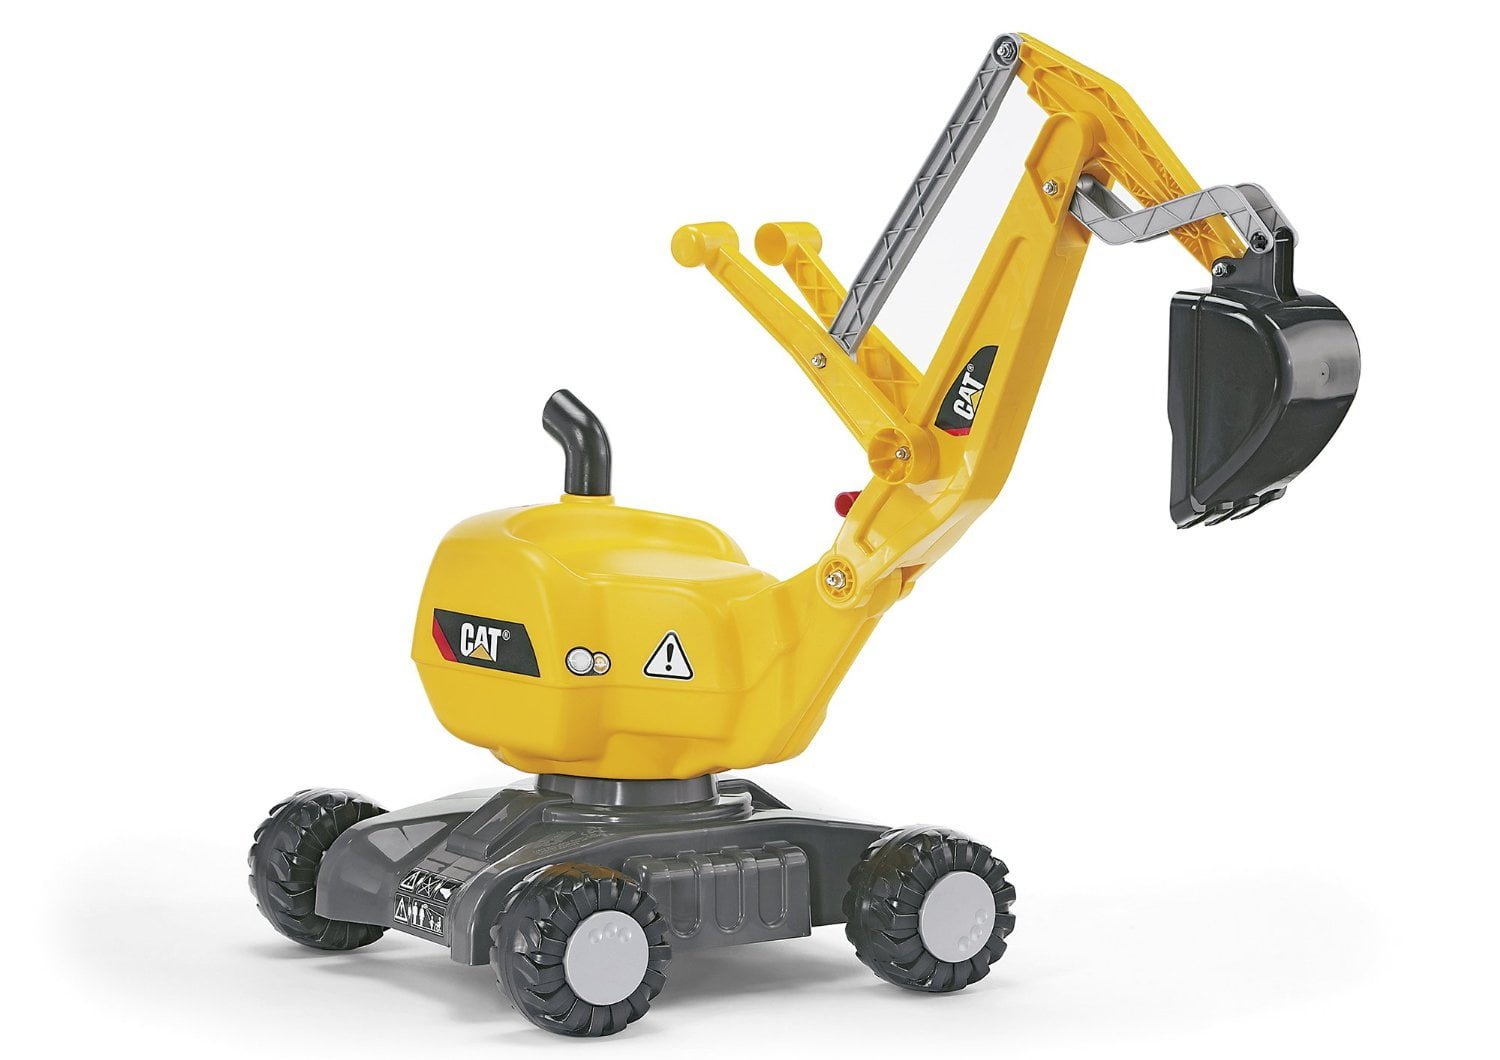 Construction Site Toys For Boys : The top best ride on construction toys for kids in